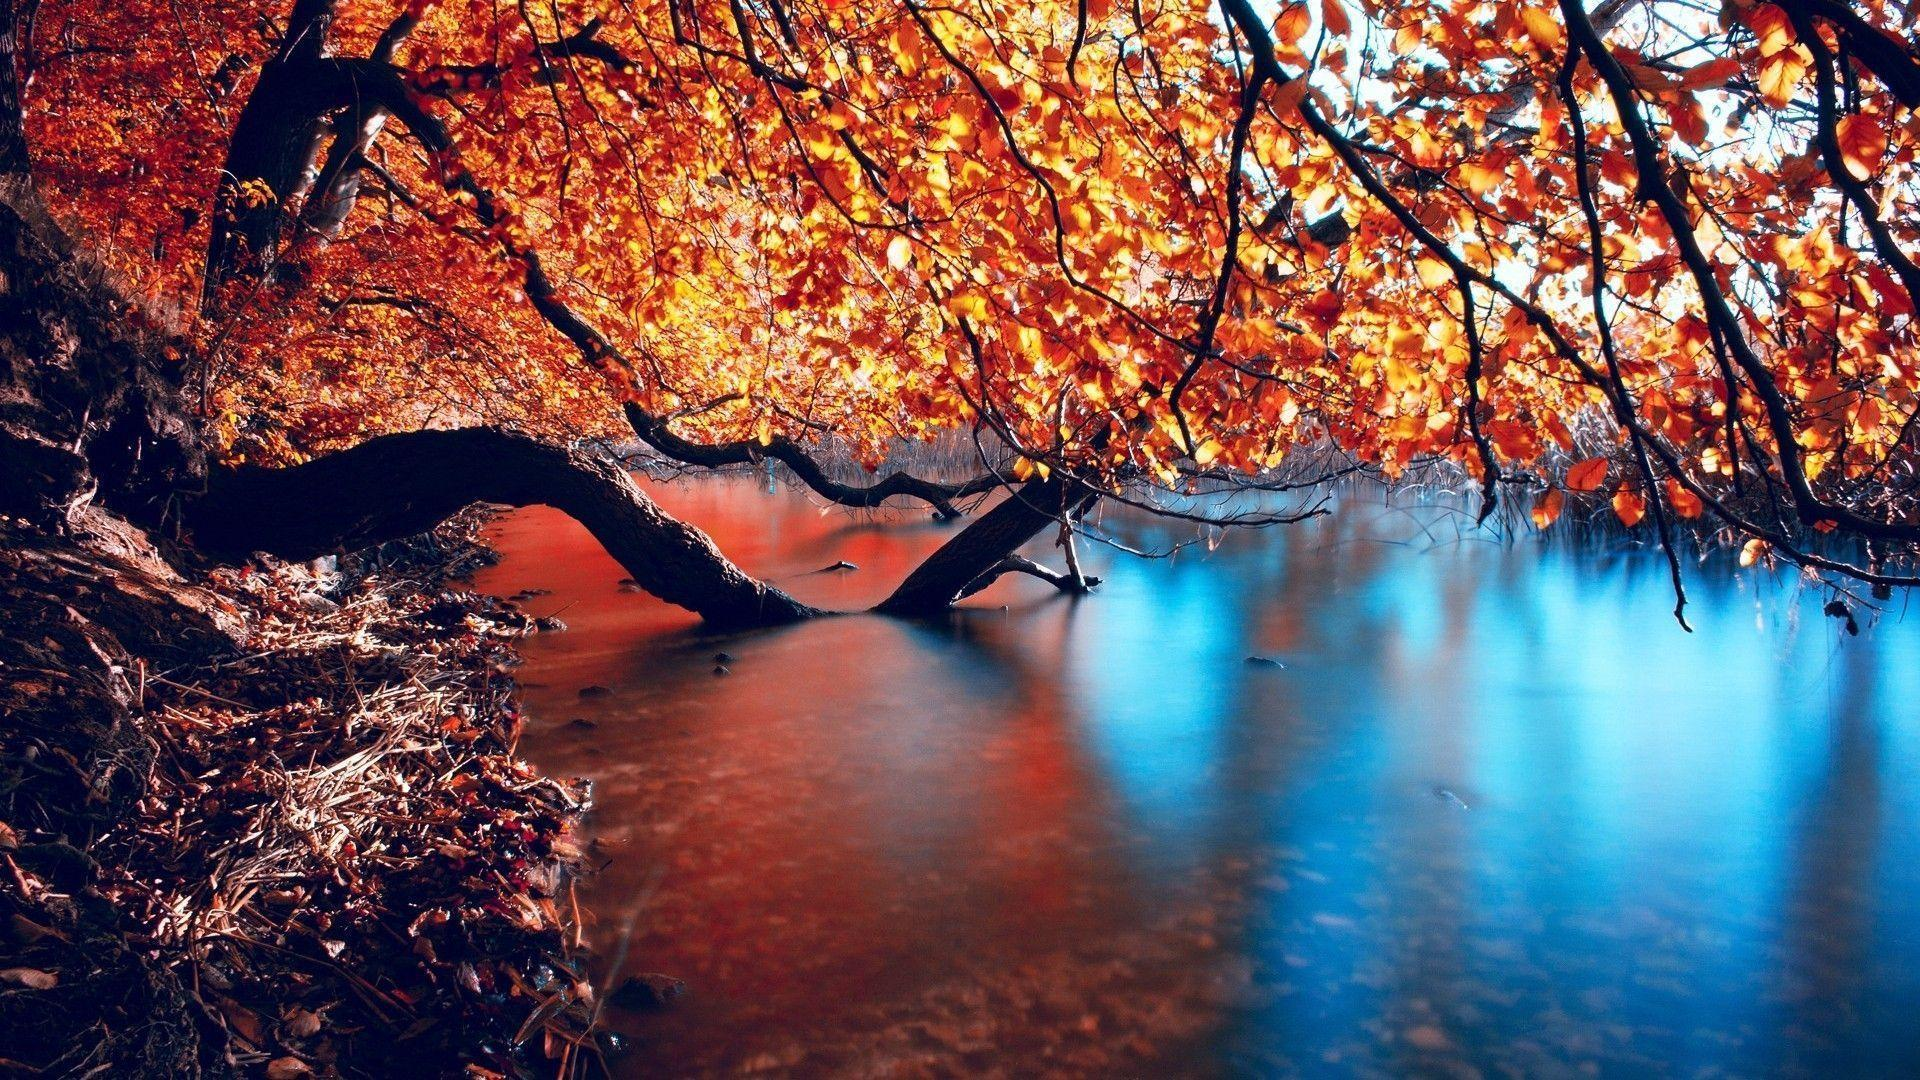 Autumn HD Wallpapers 1920x1080